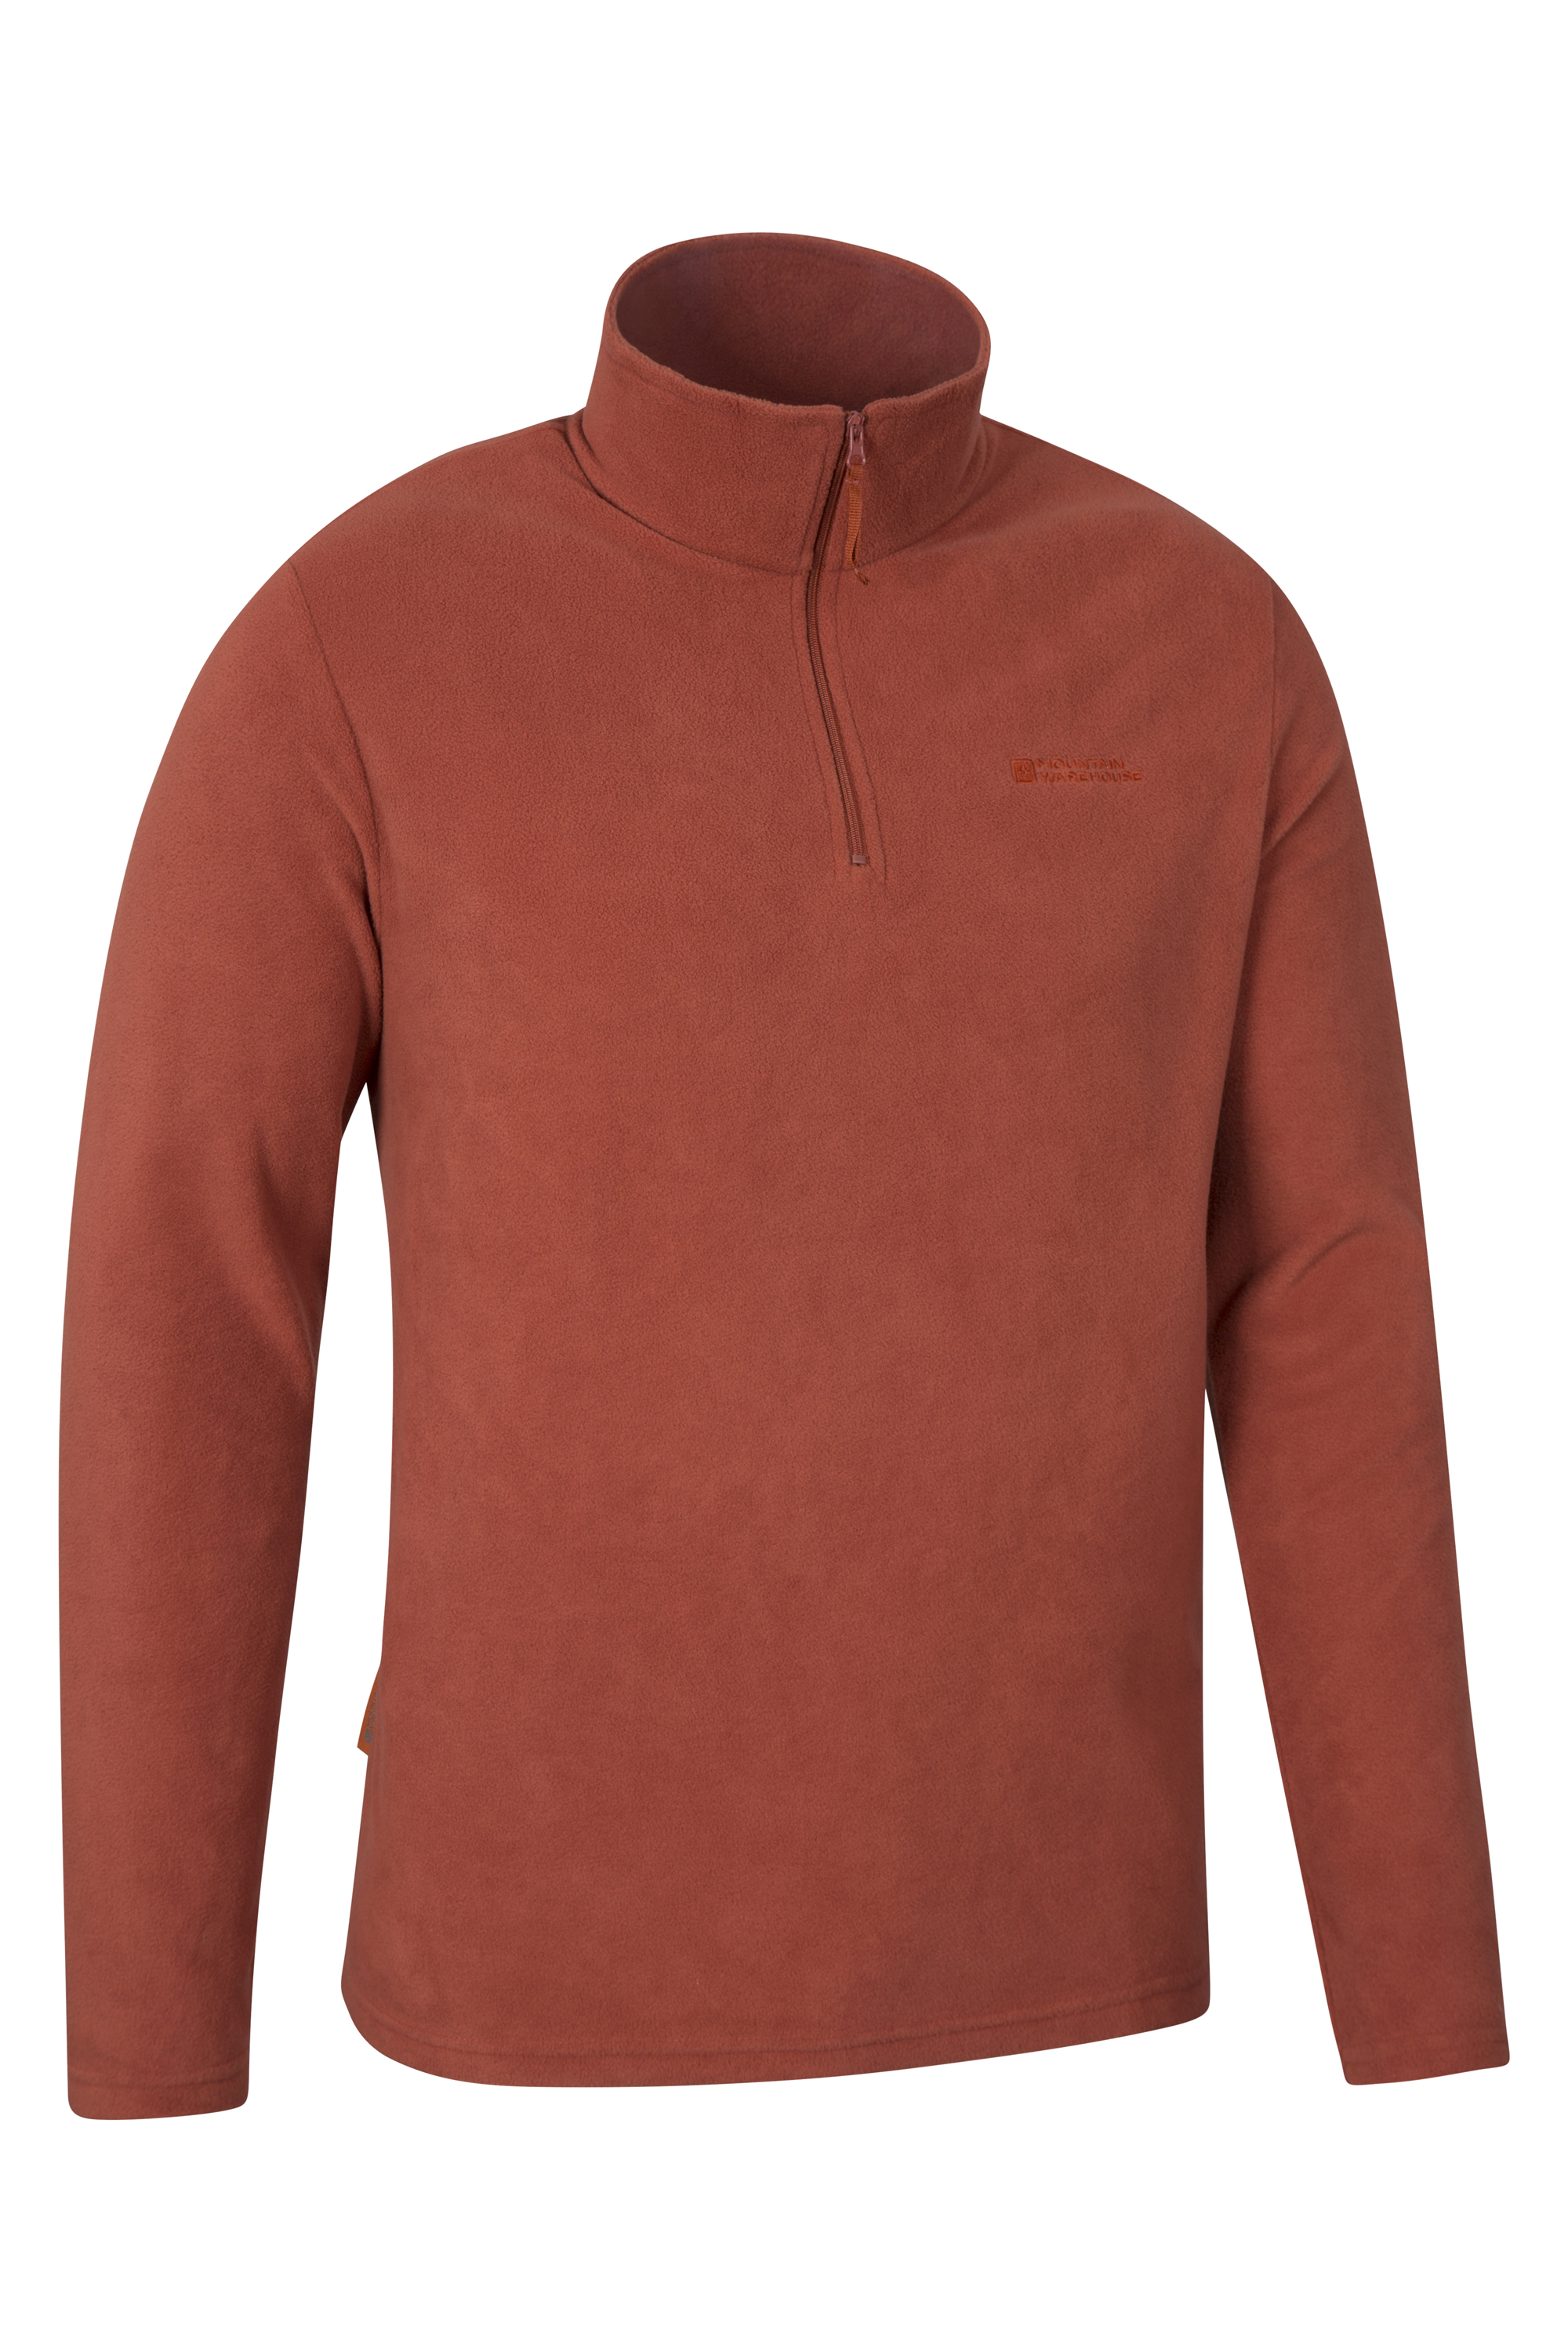 Mens Half Zip Fleece.